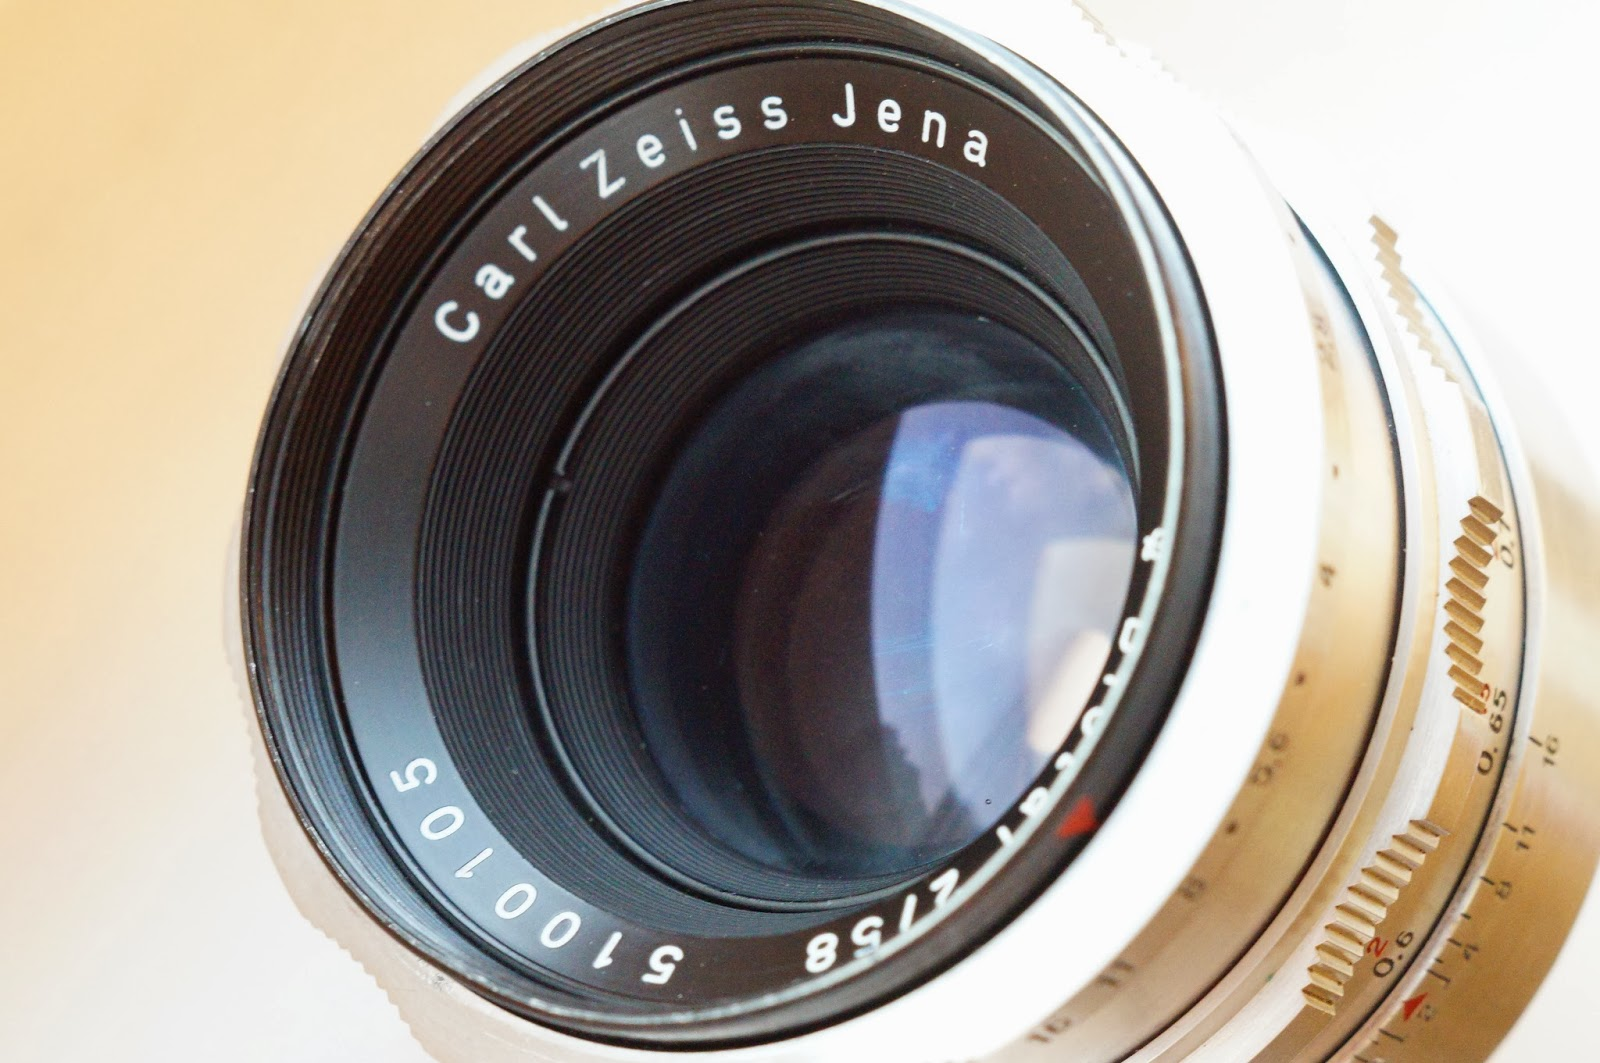 Carl Zeiss Jena Biotar 58mm f/2 M42 sample